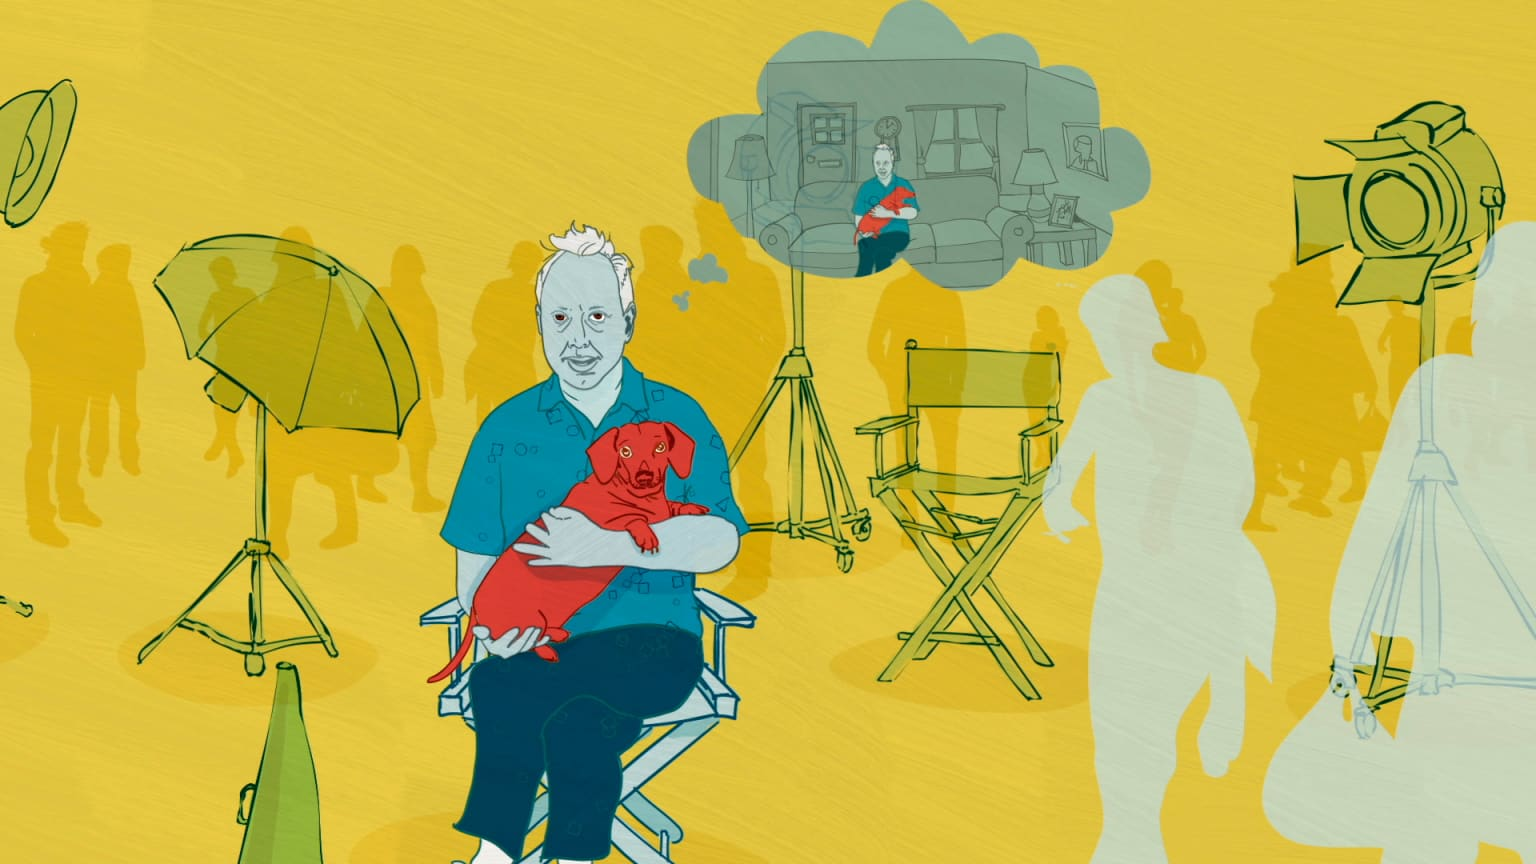 Todd Solondz: 'My Movies Aren't for Everyone'